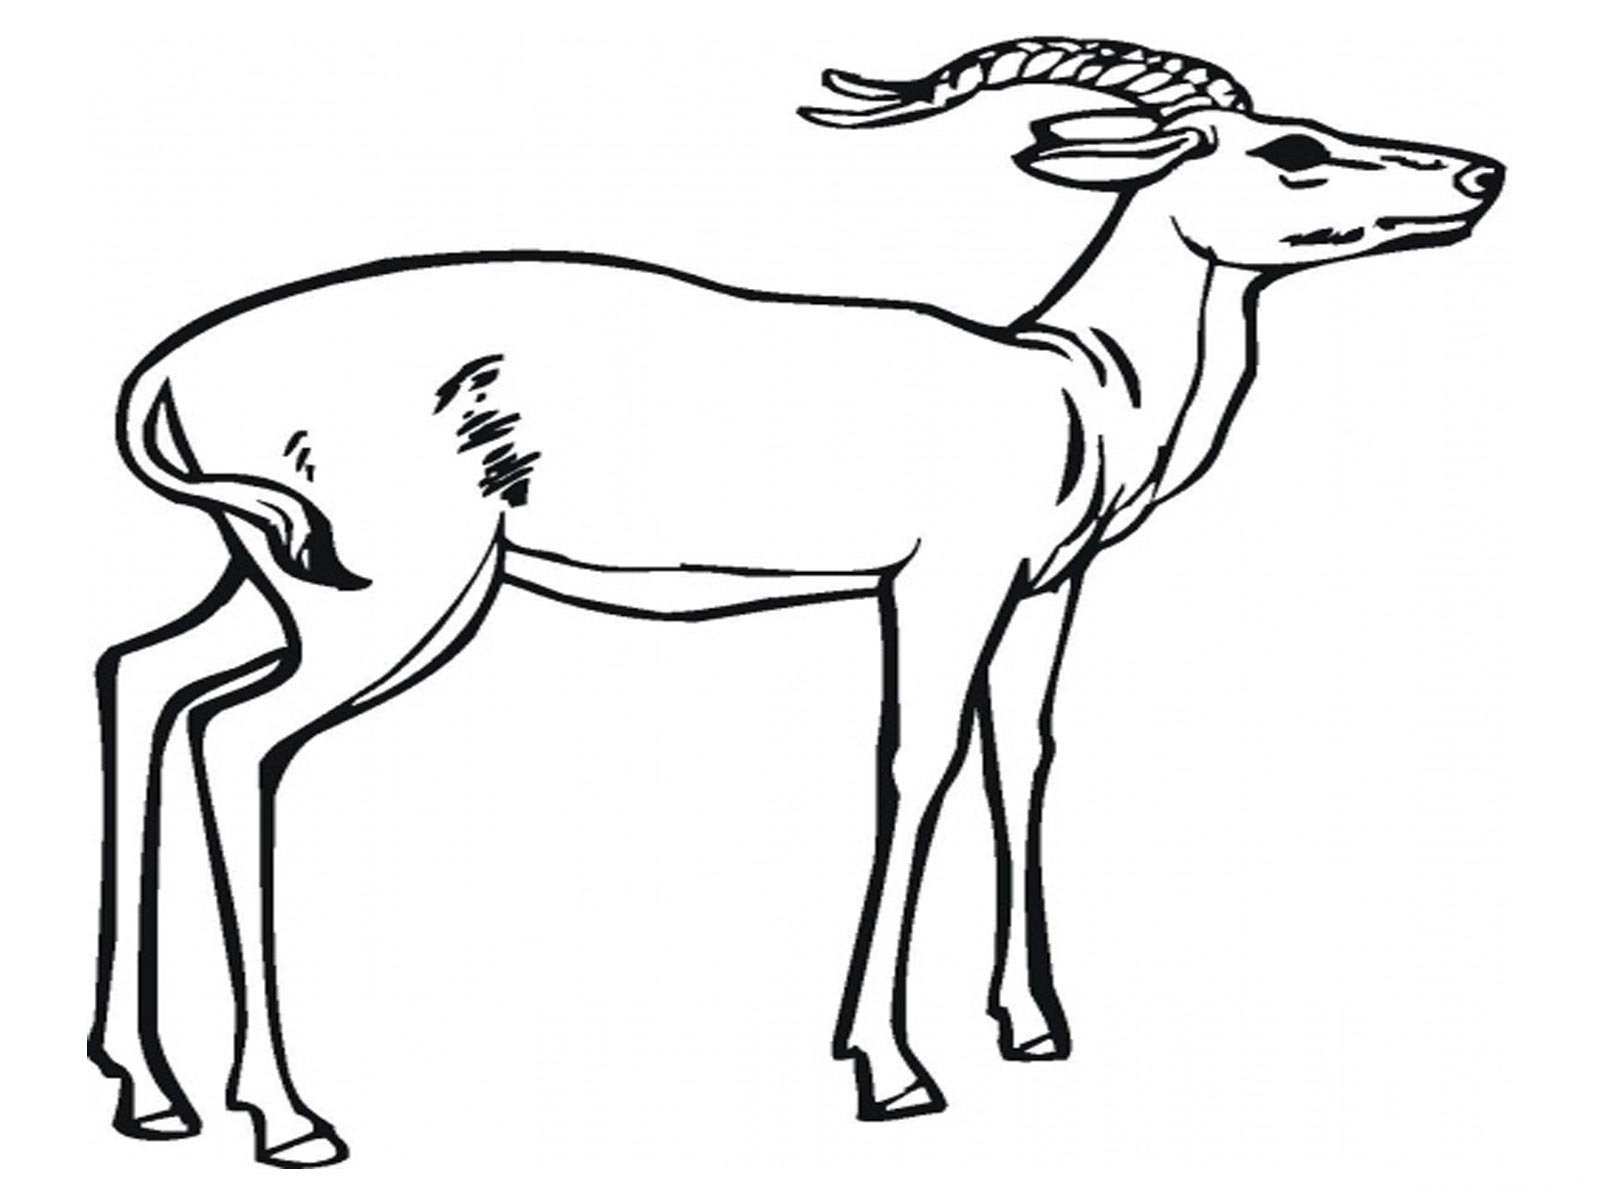 Antelope Coloring Pages Kidsuki